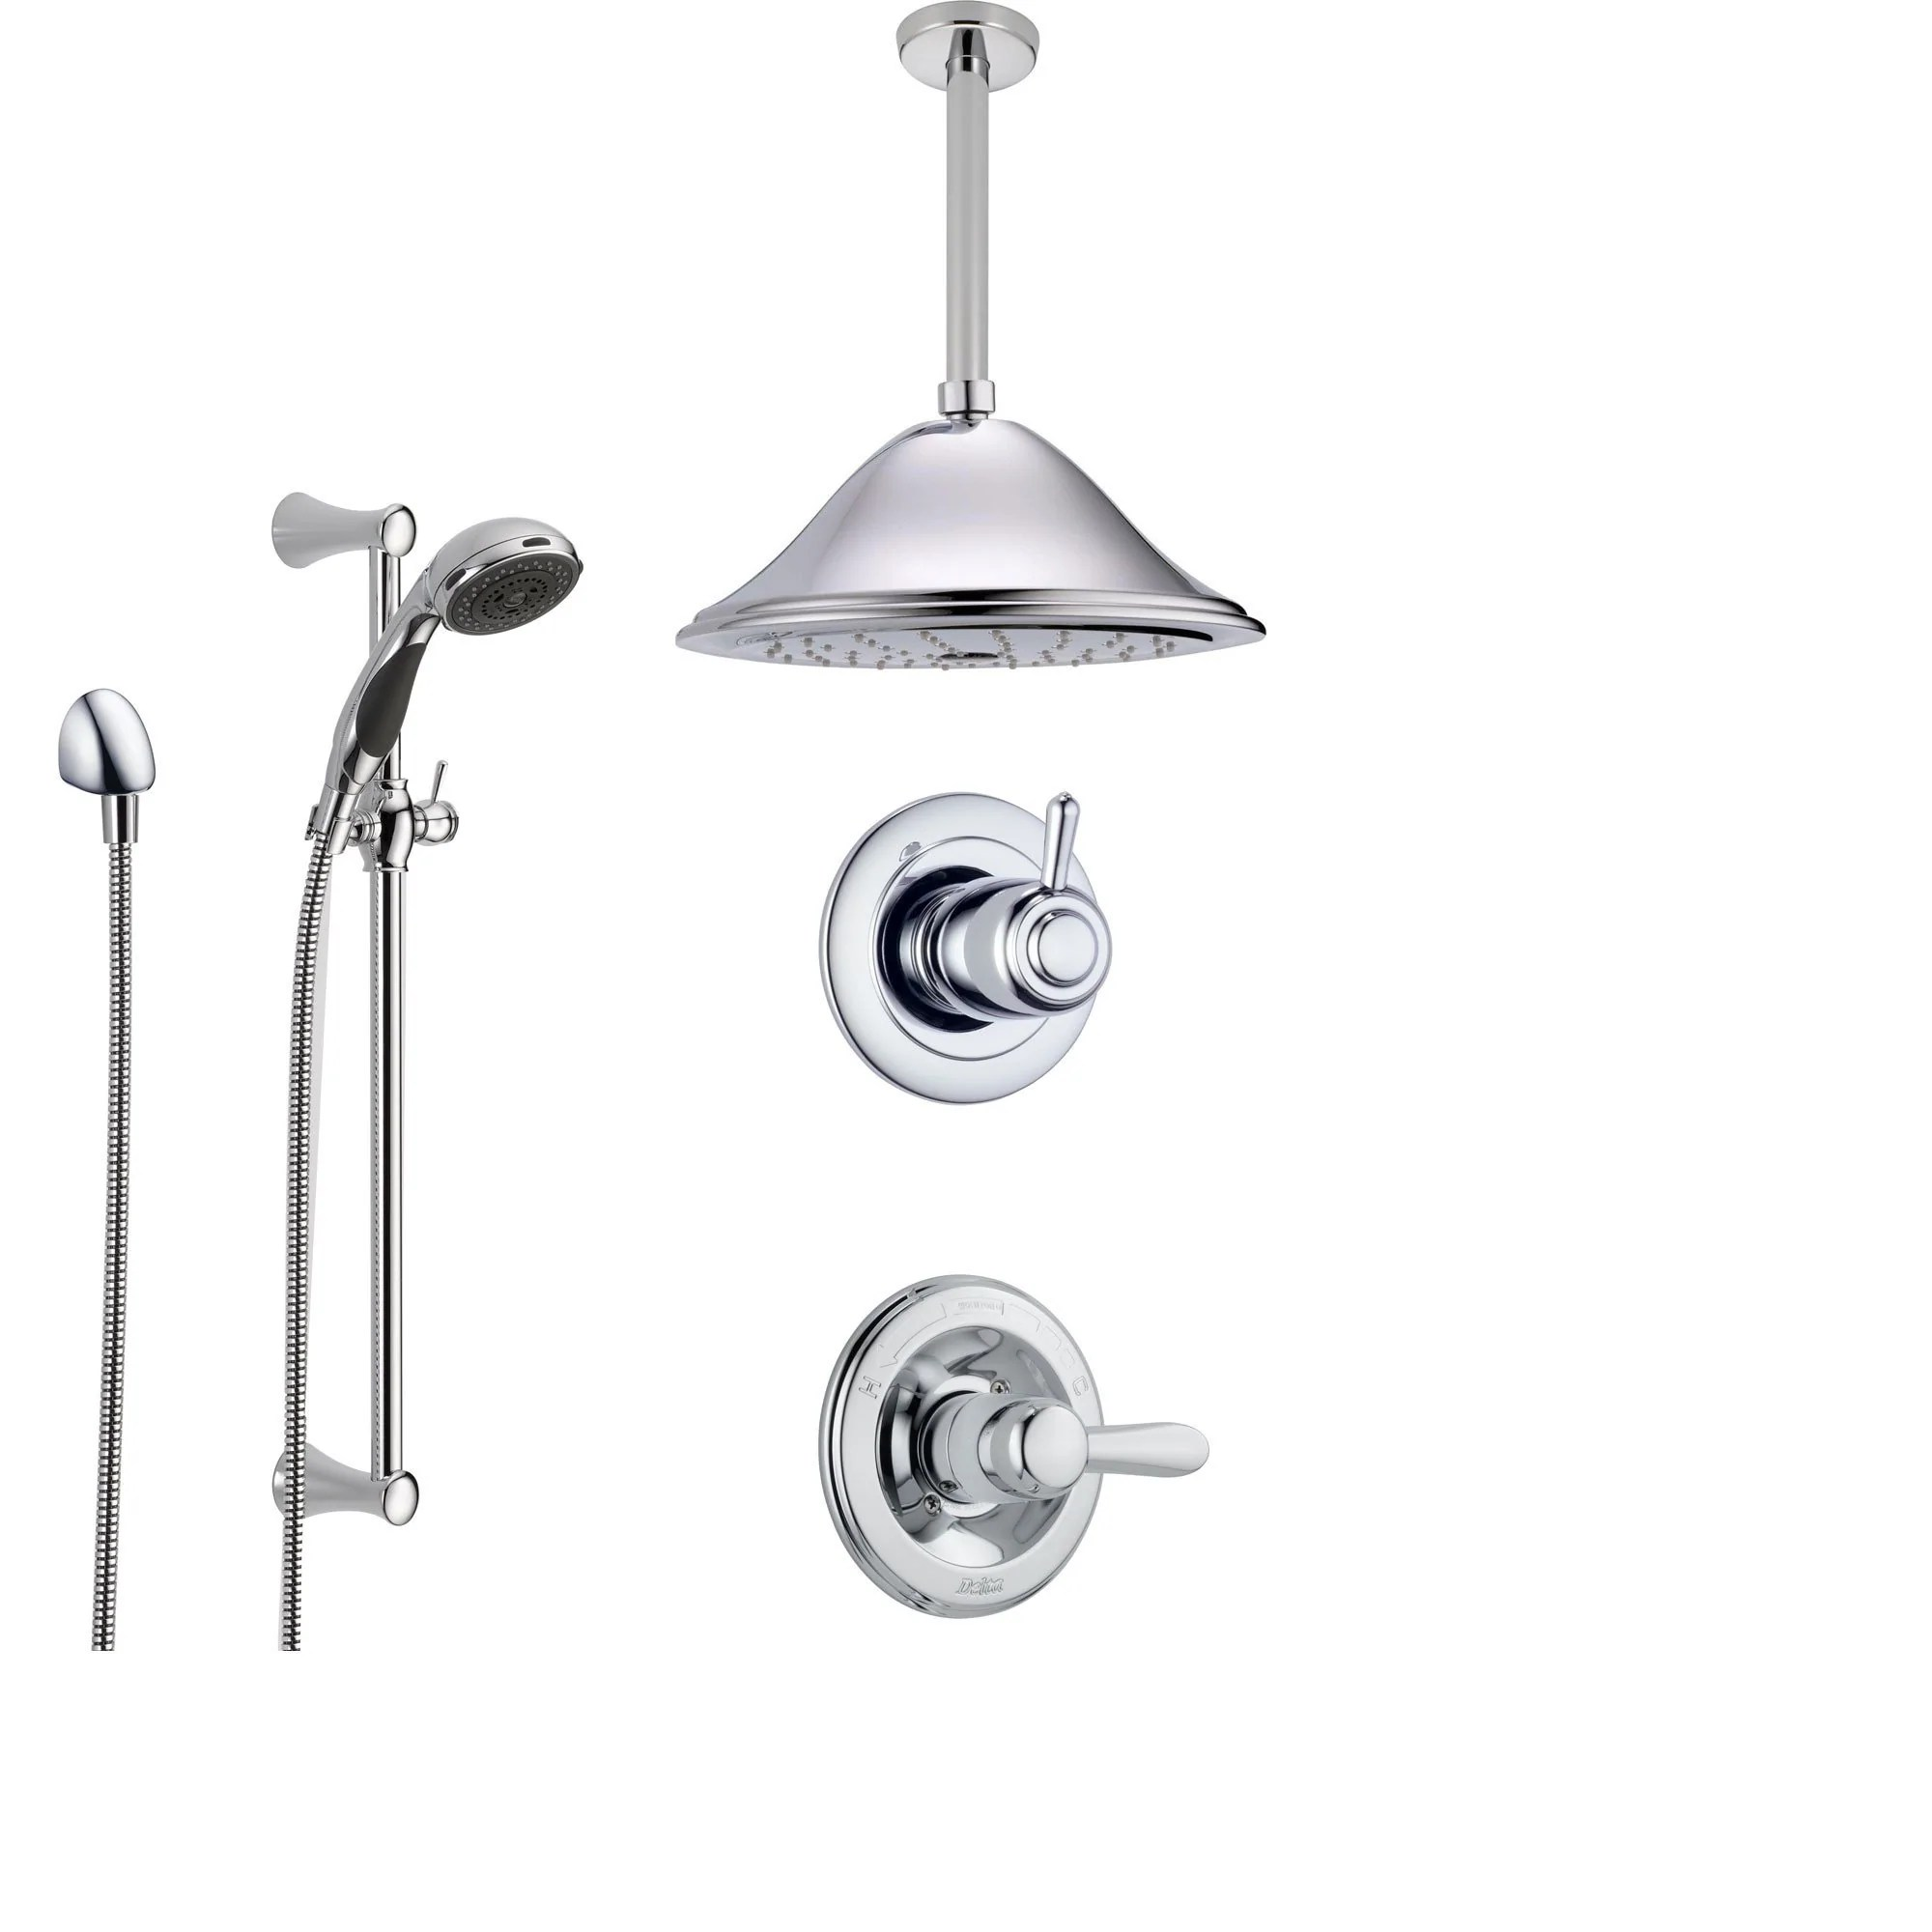 Delta Lahara Chrome Shower System With Normal Shower Handle 3 Setting Diverter Large Ceiling Mount Rain Showerhead And Handheld Shower Ss143882